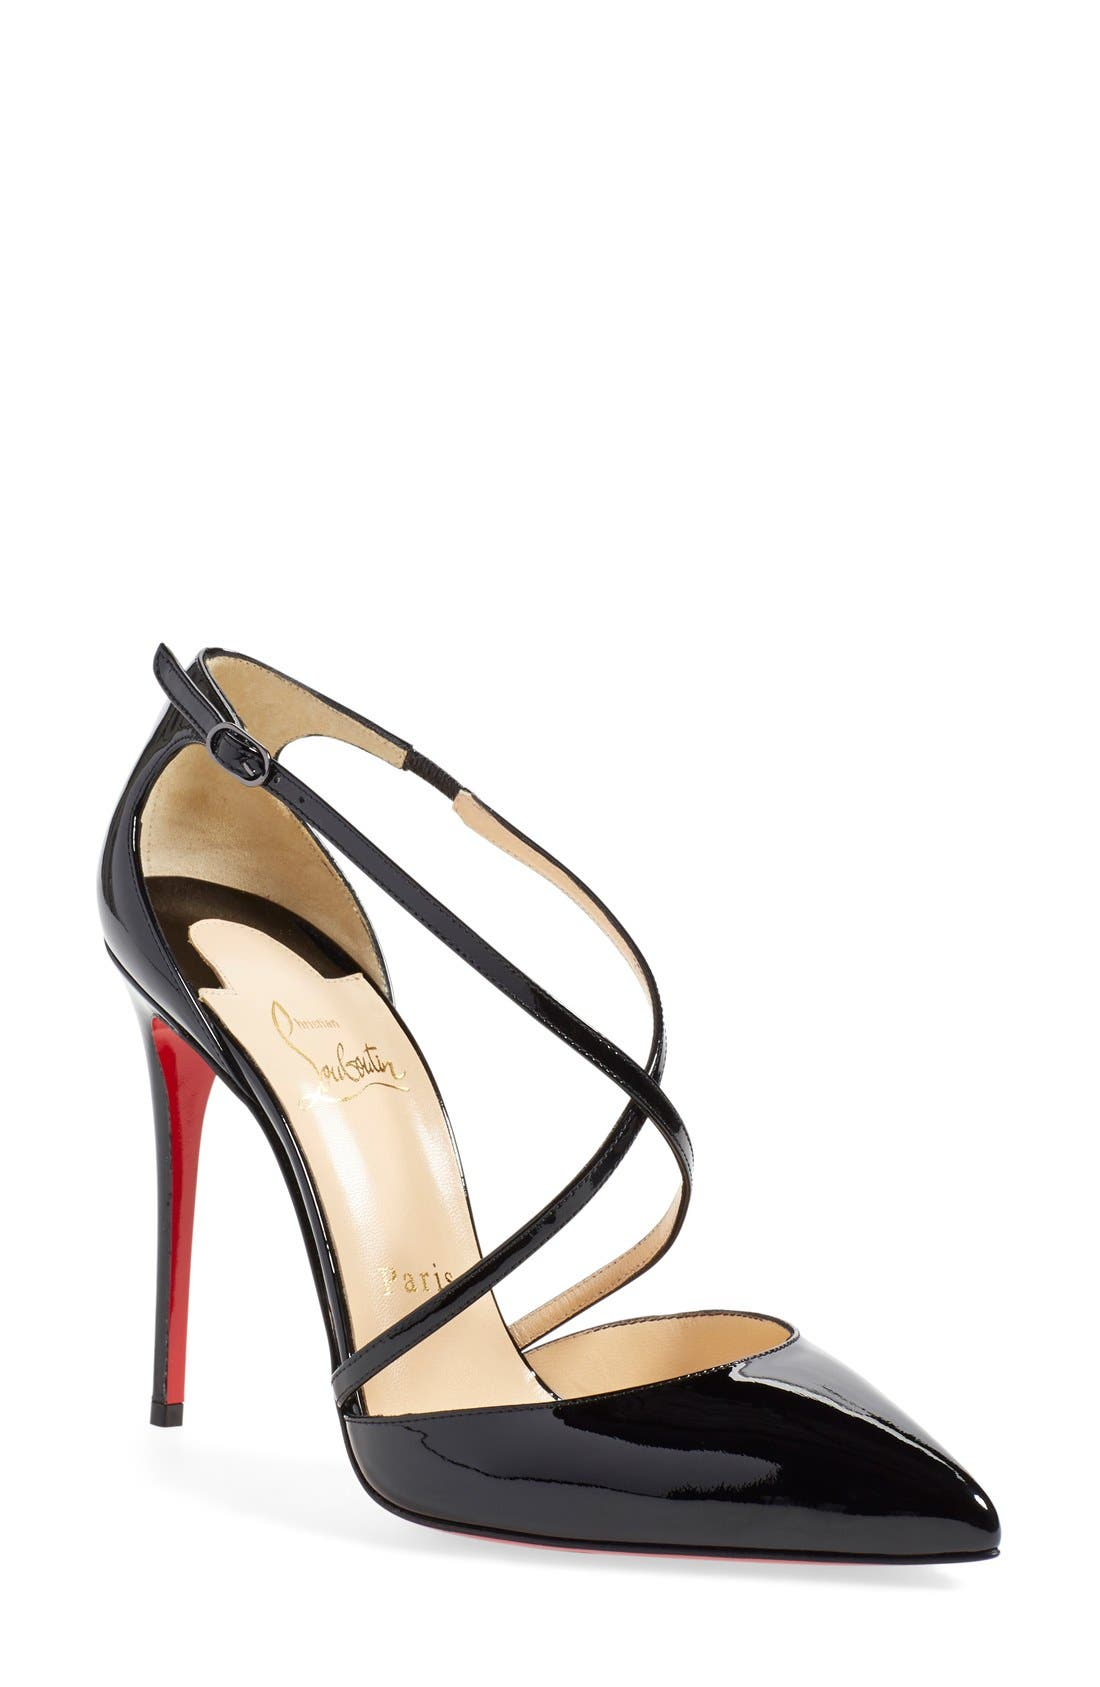 Main Image - Christian Louboutin 'Blake' Pointy Toe Pump